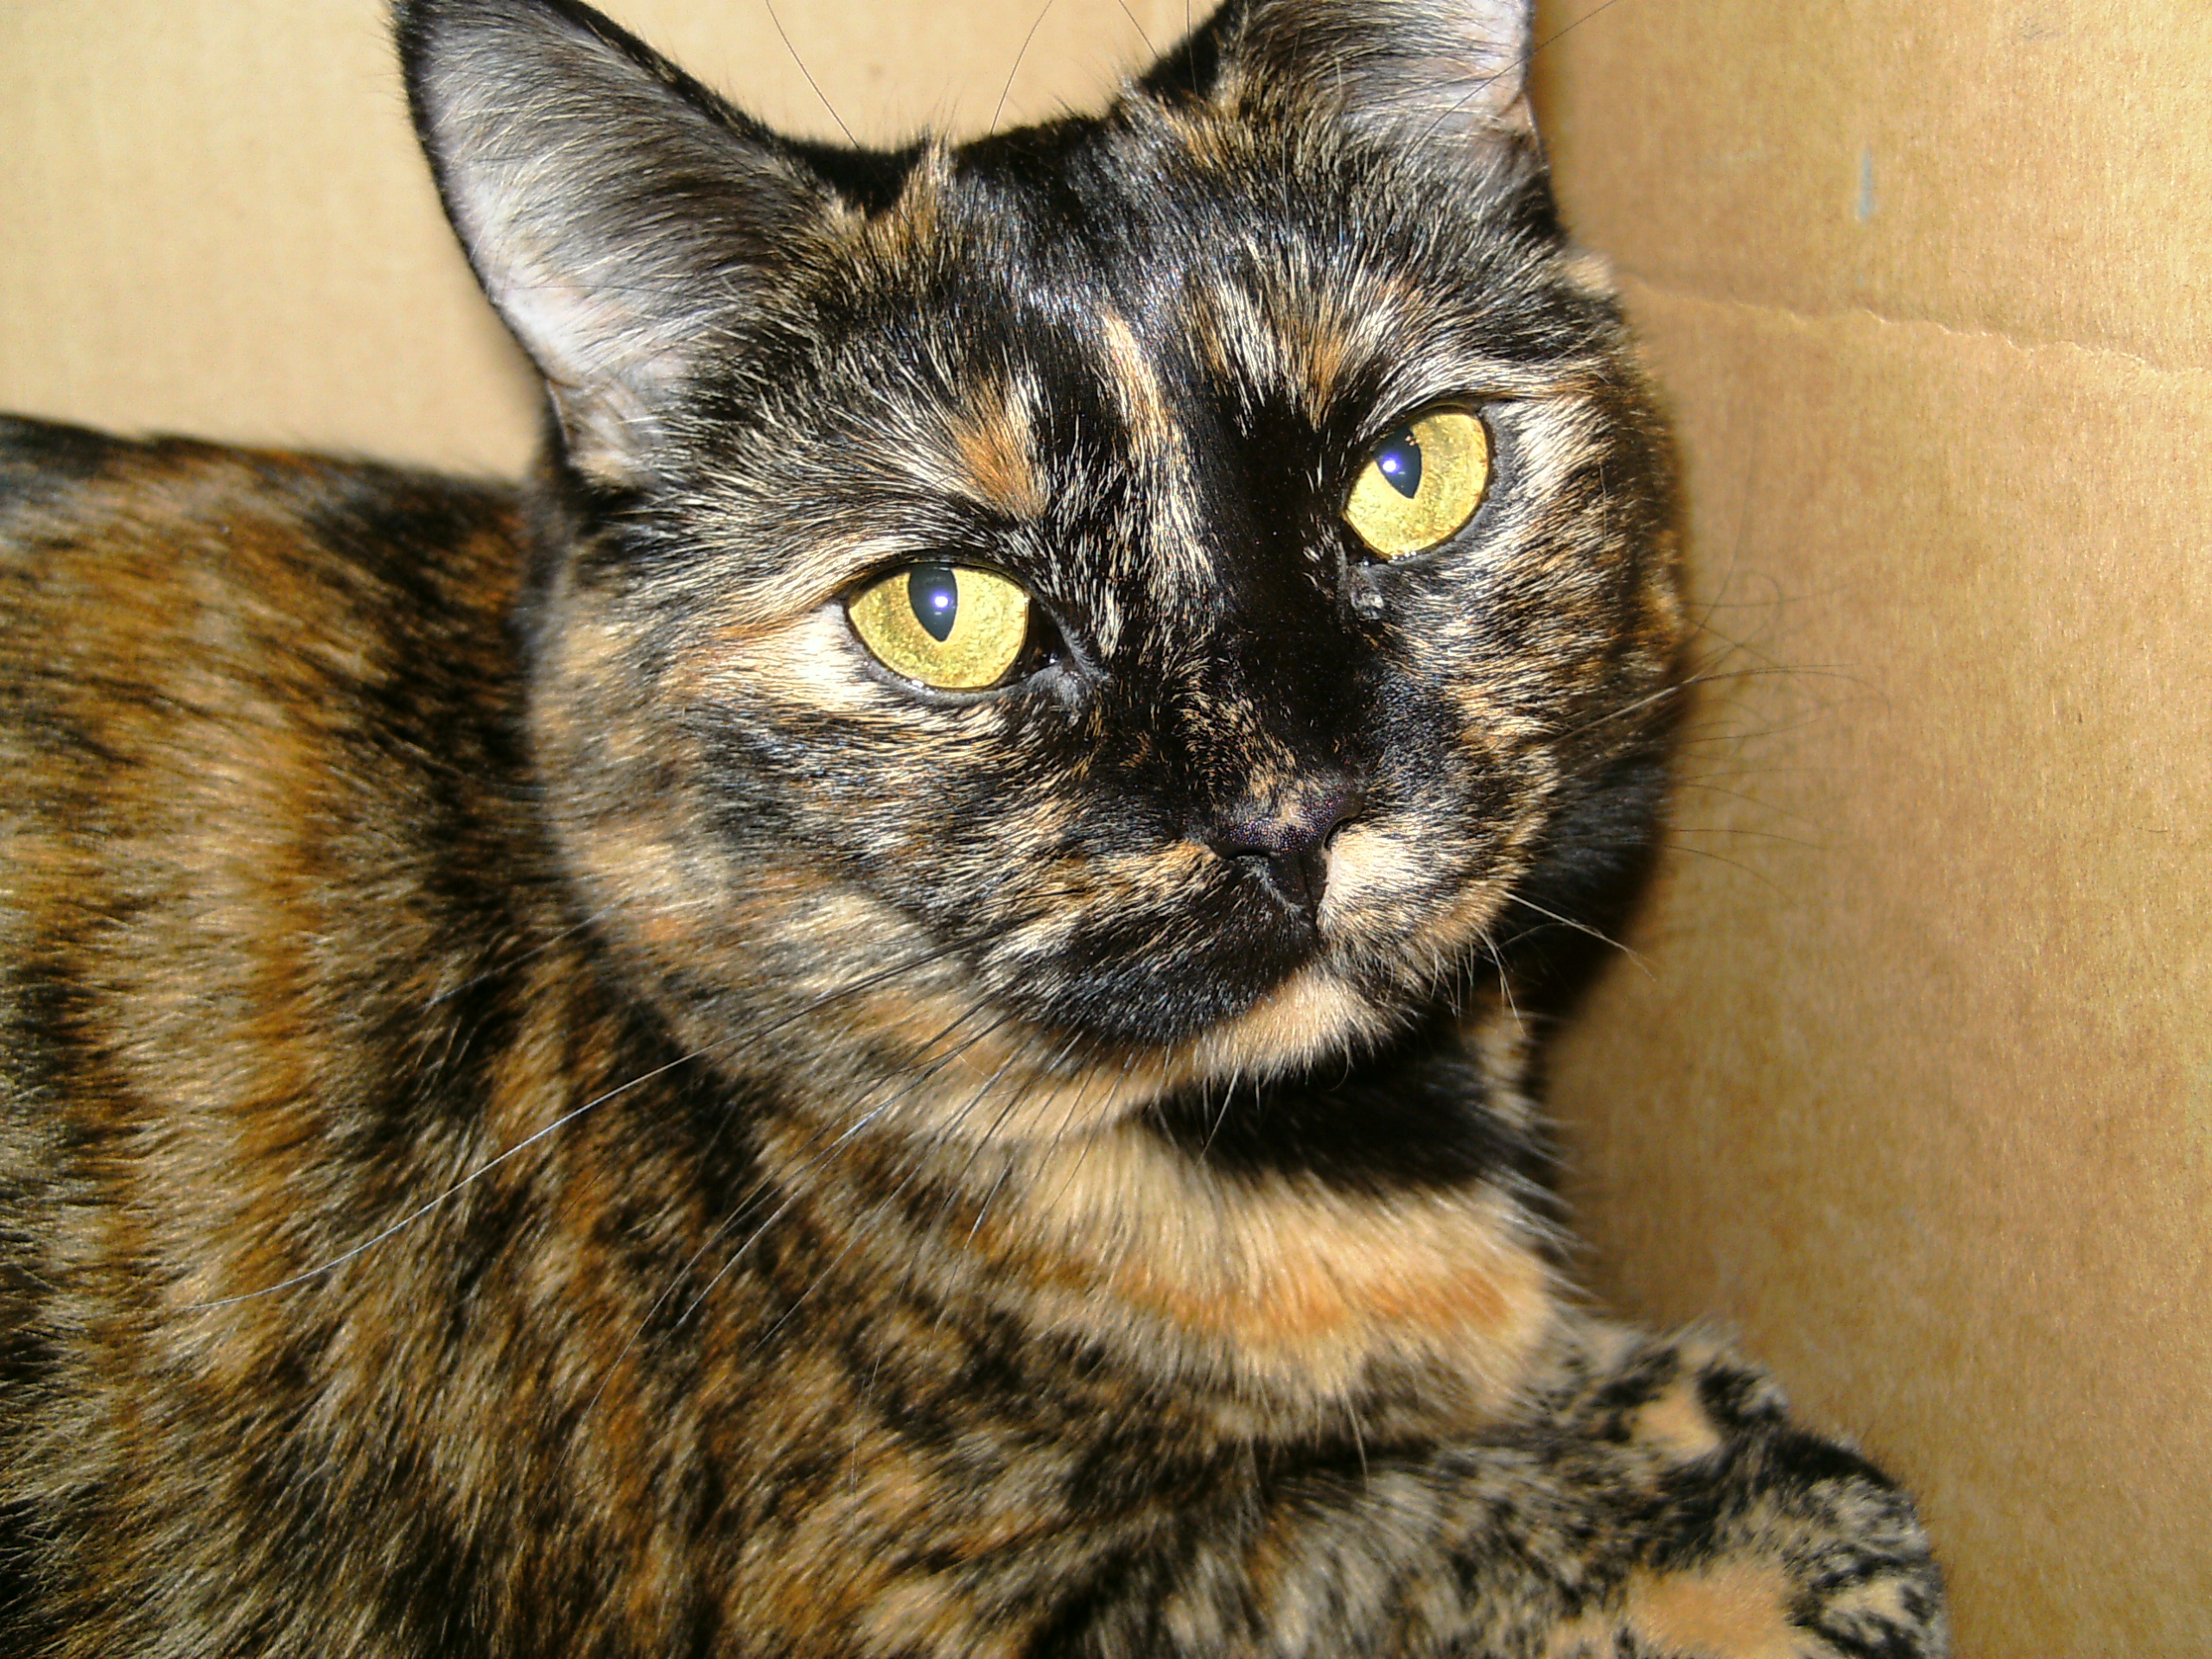 125 Most Asked Questions About Cats | Library of Cats